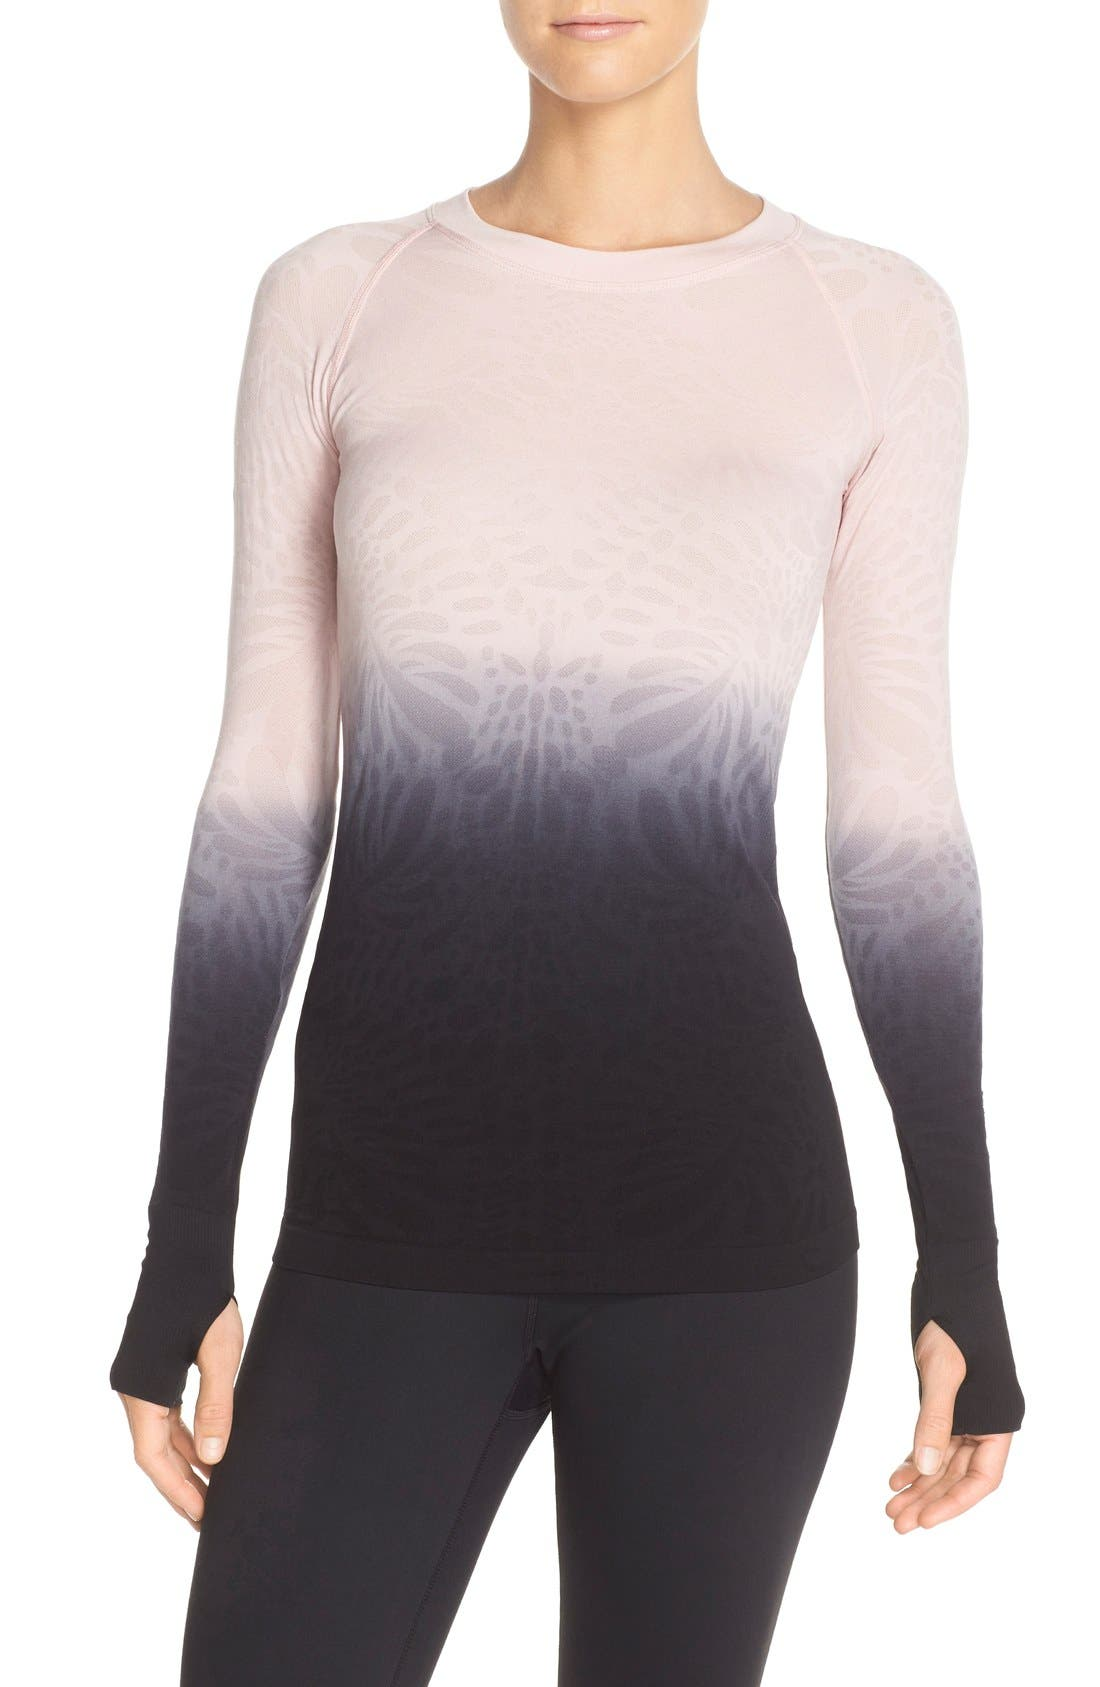 Climawear 'See the Light' Ombré Long Sleeve Tee